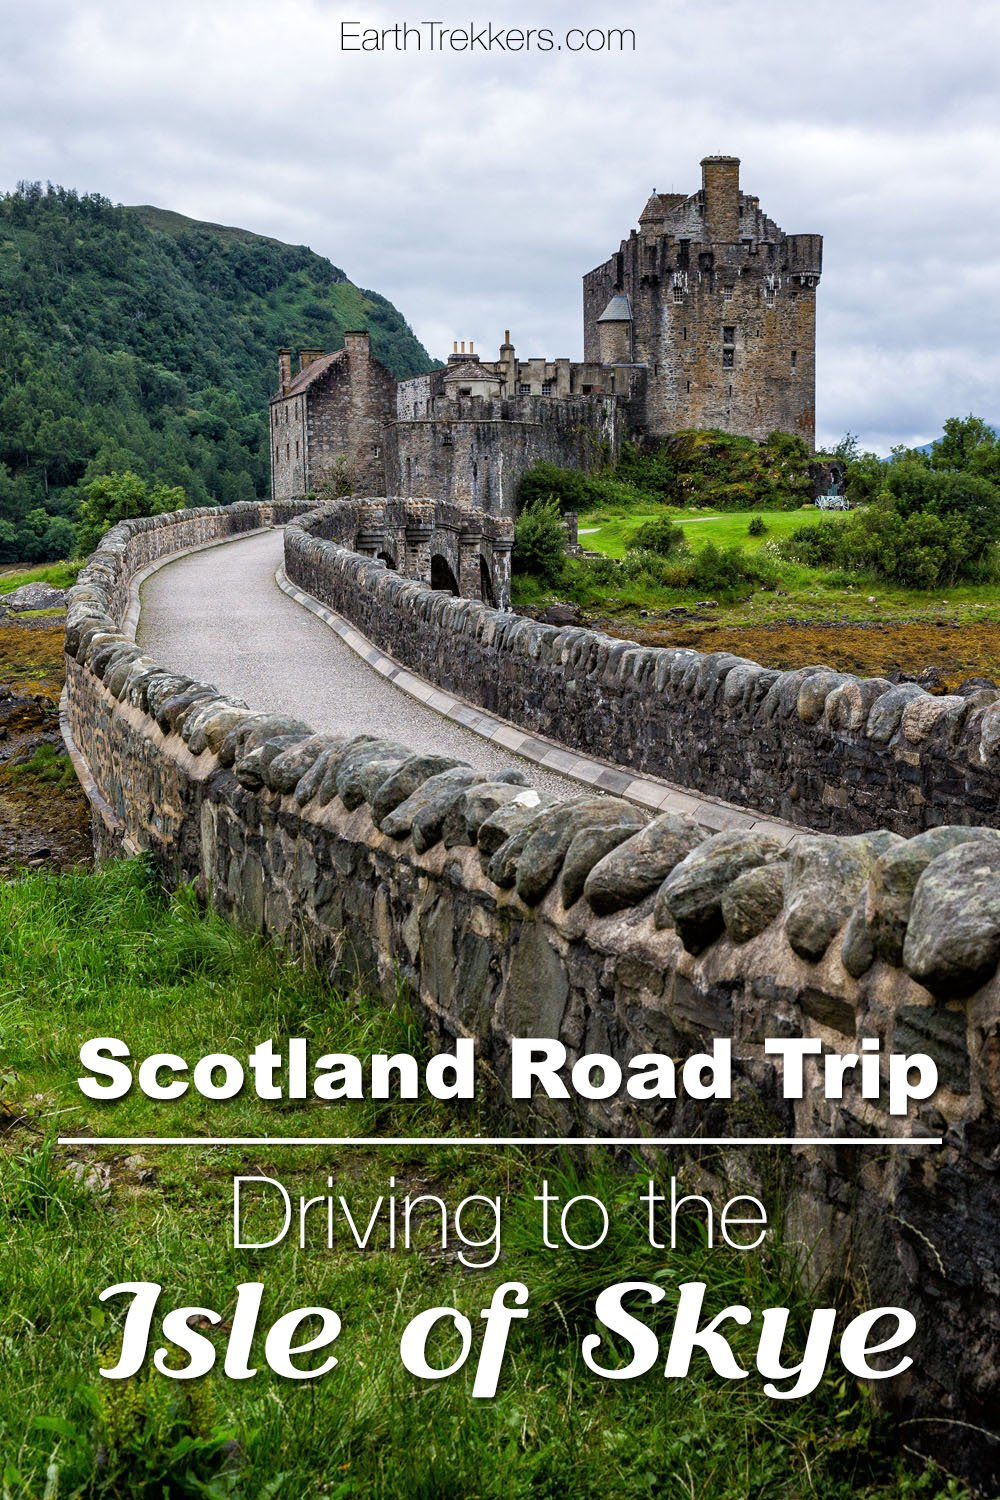 Scotland road trip: Driving to the Isle of Skye